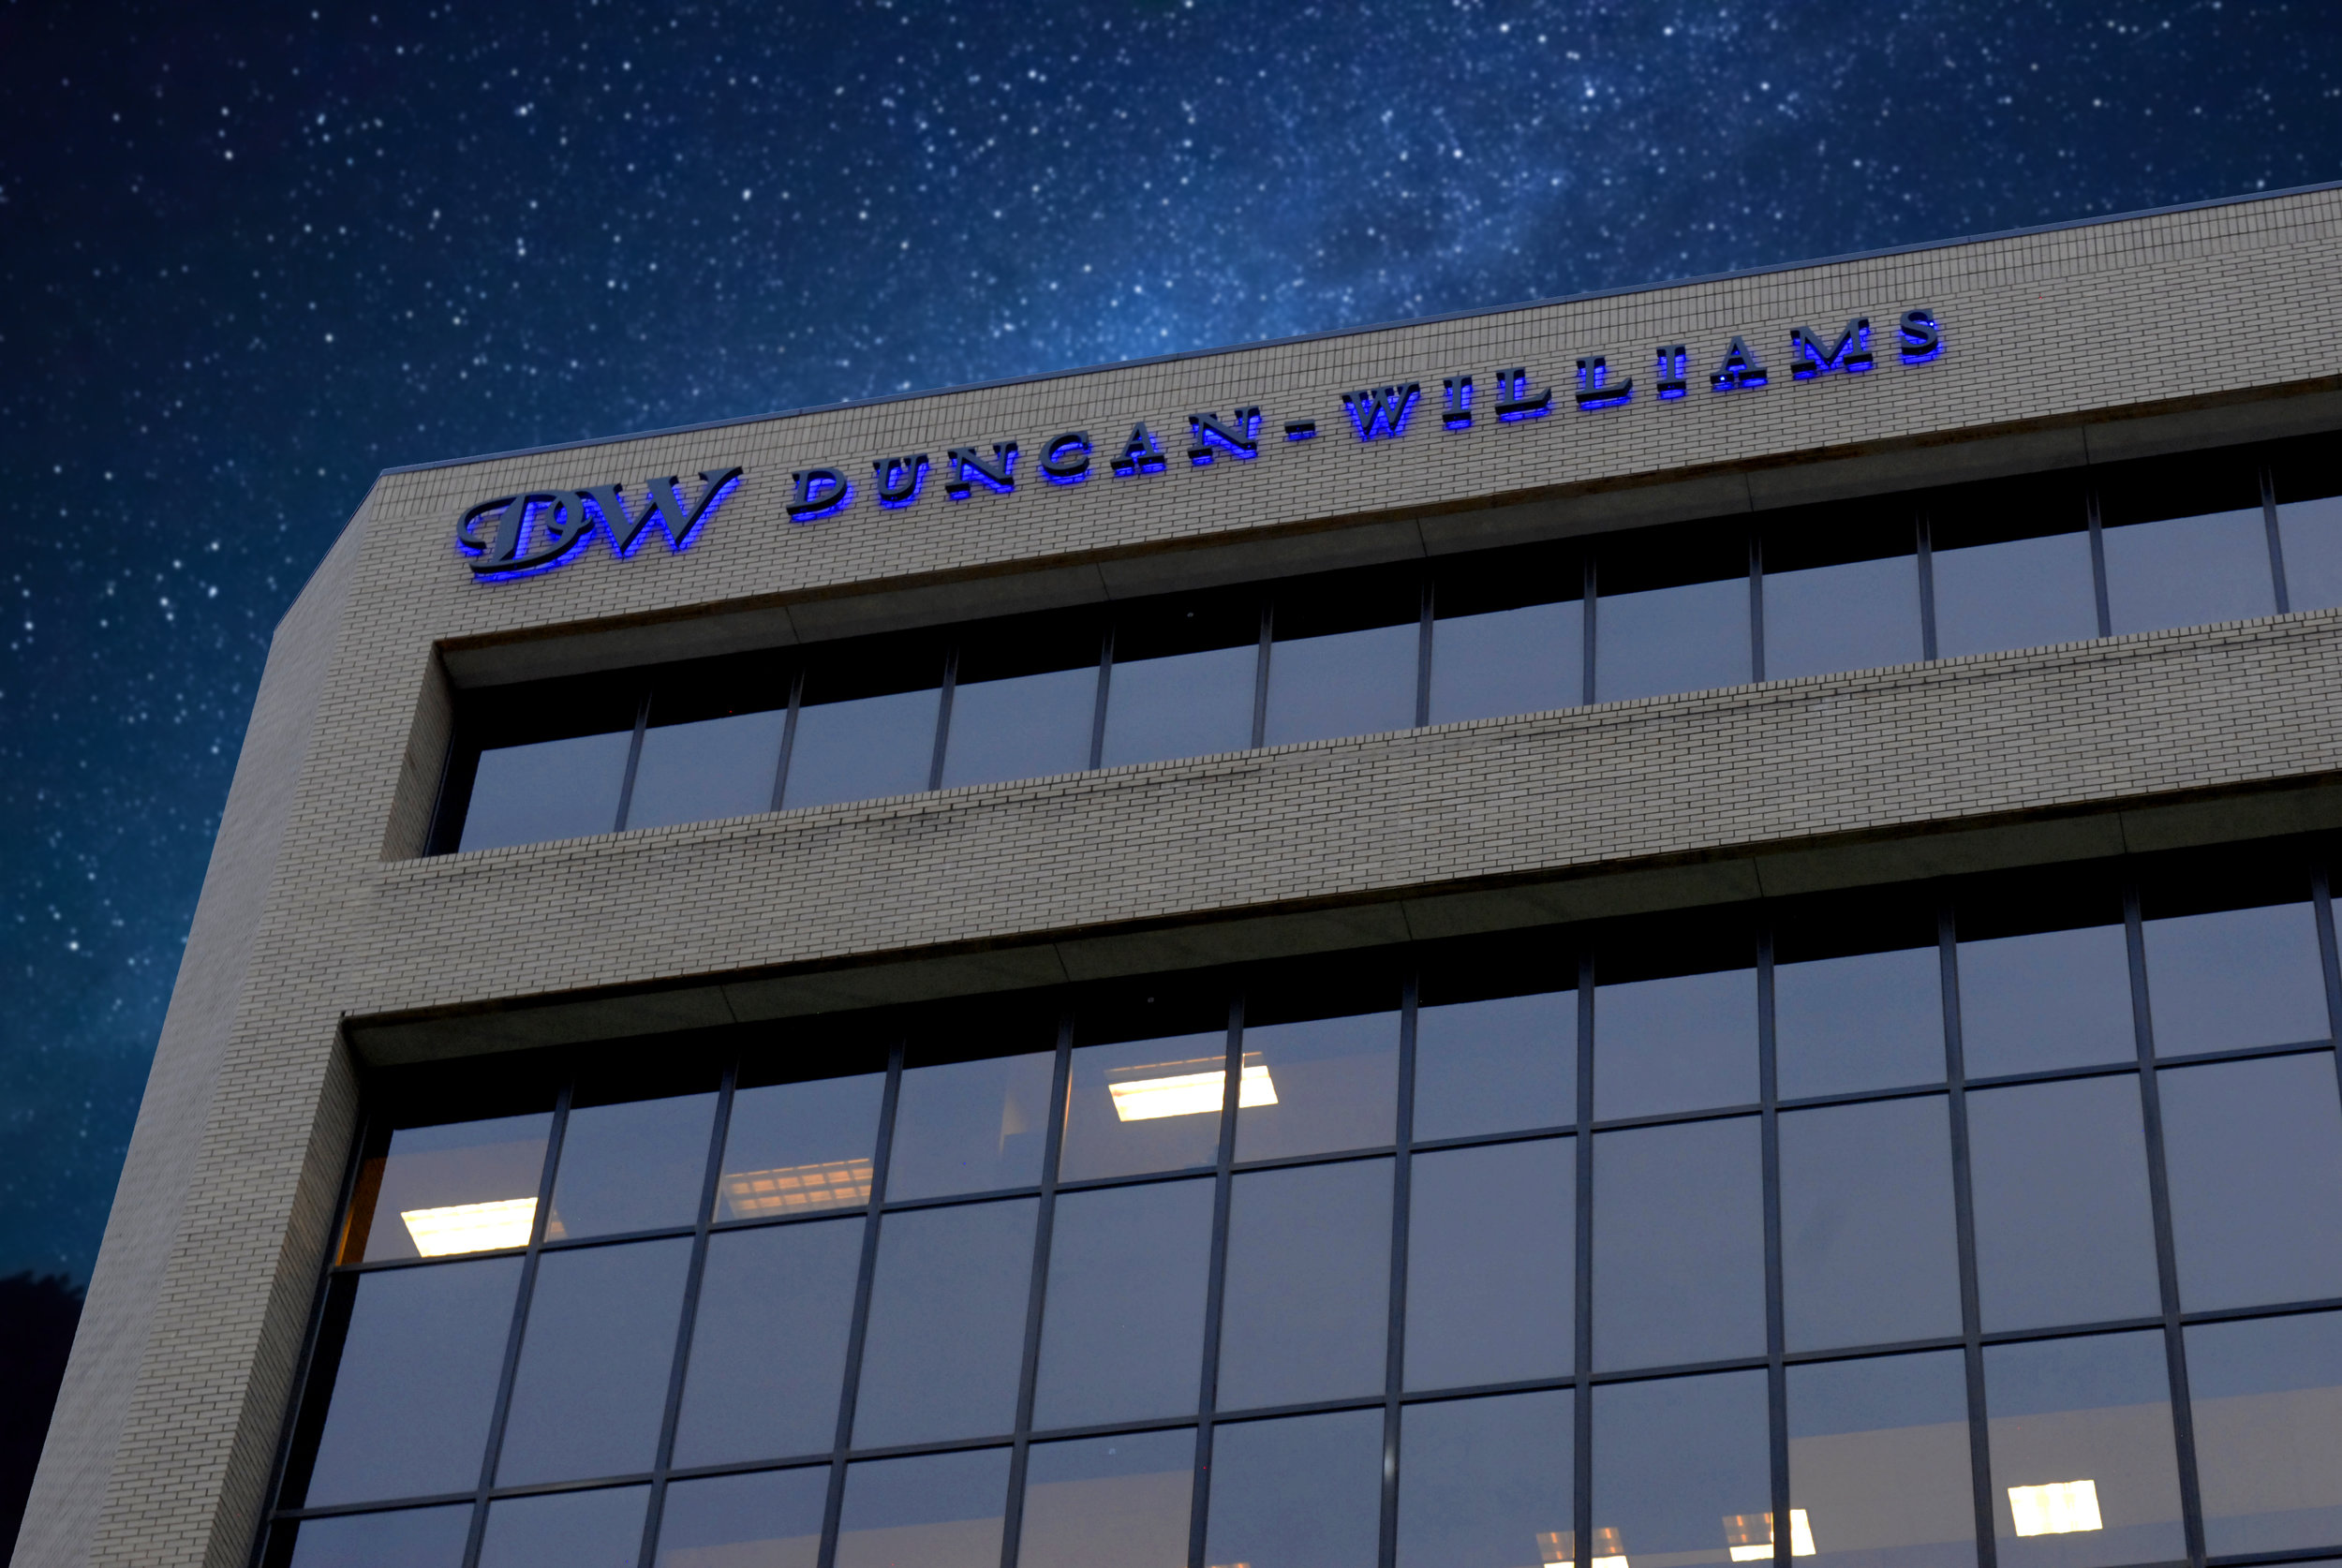 Duncan Williams Illuminated Building Sign